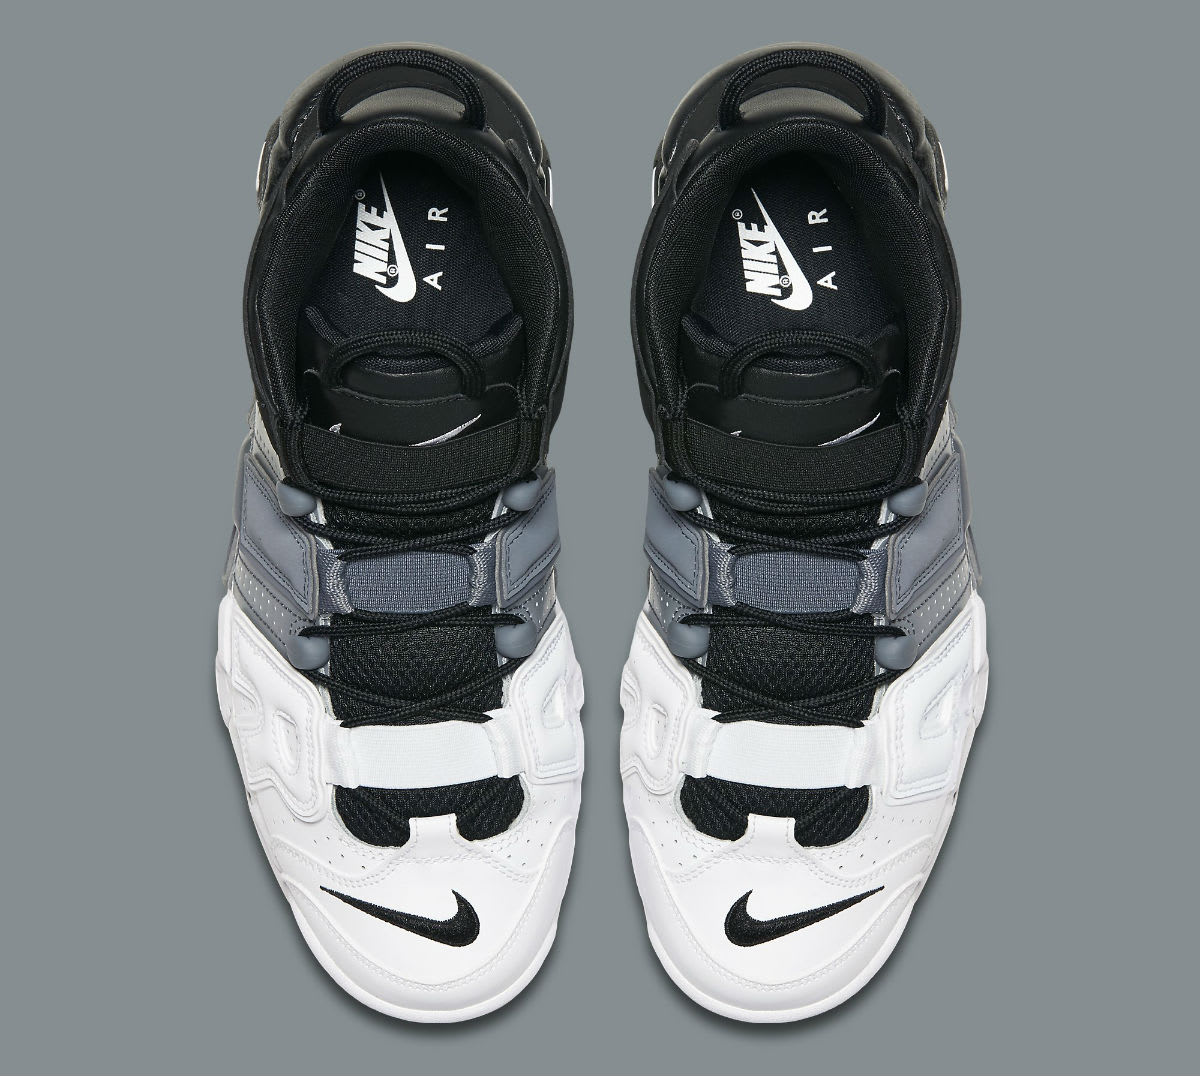 save off 30e98 2a259 ... Nike Air More Uptempo Tri-Color Release Date Top 921948-002 ...